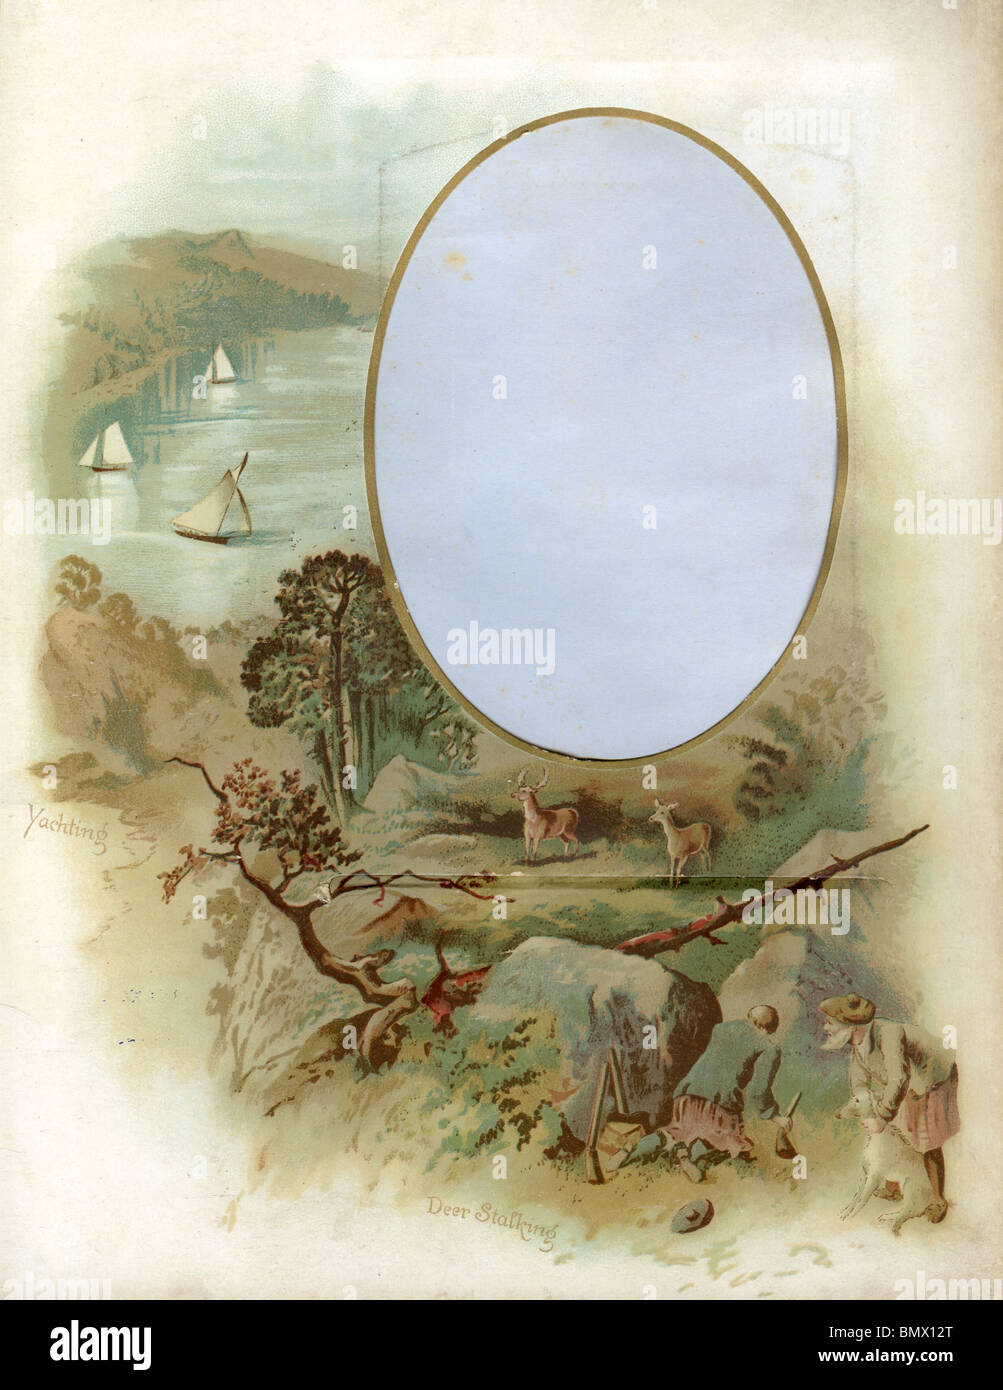 Decorative Frame - Yachting and Deer Stalking - Stock Image